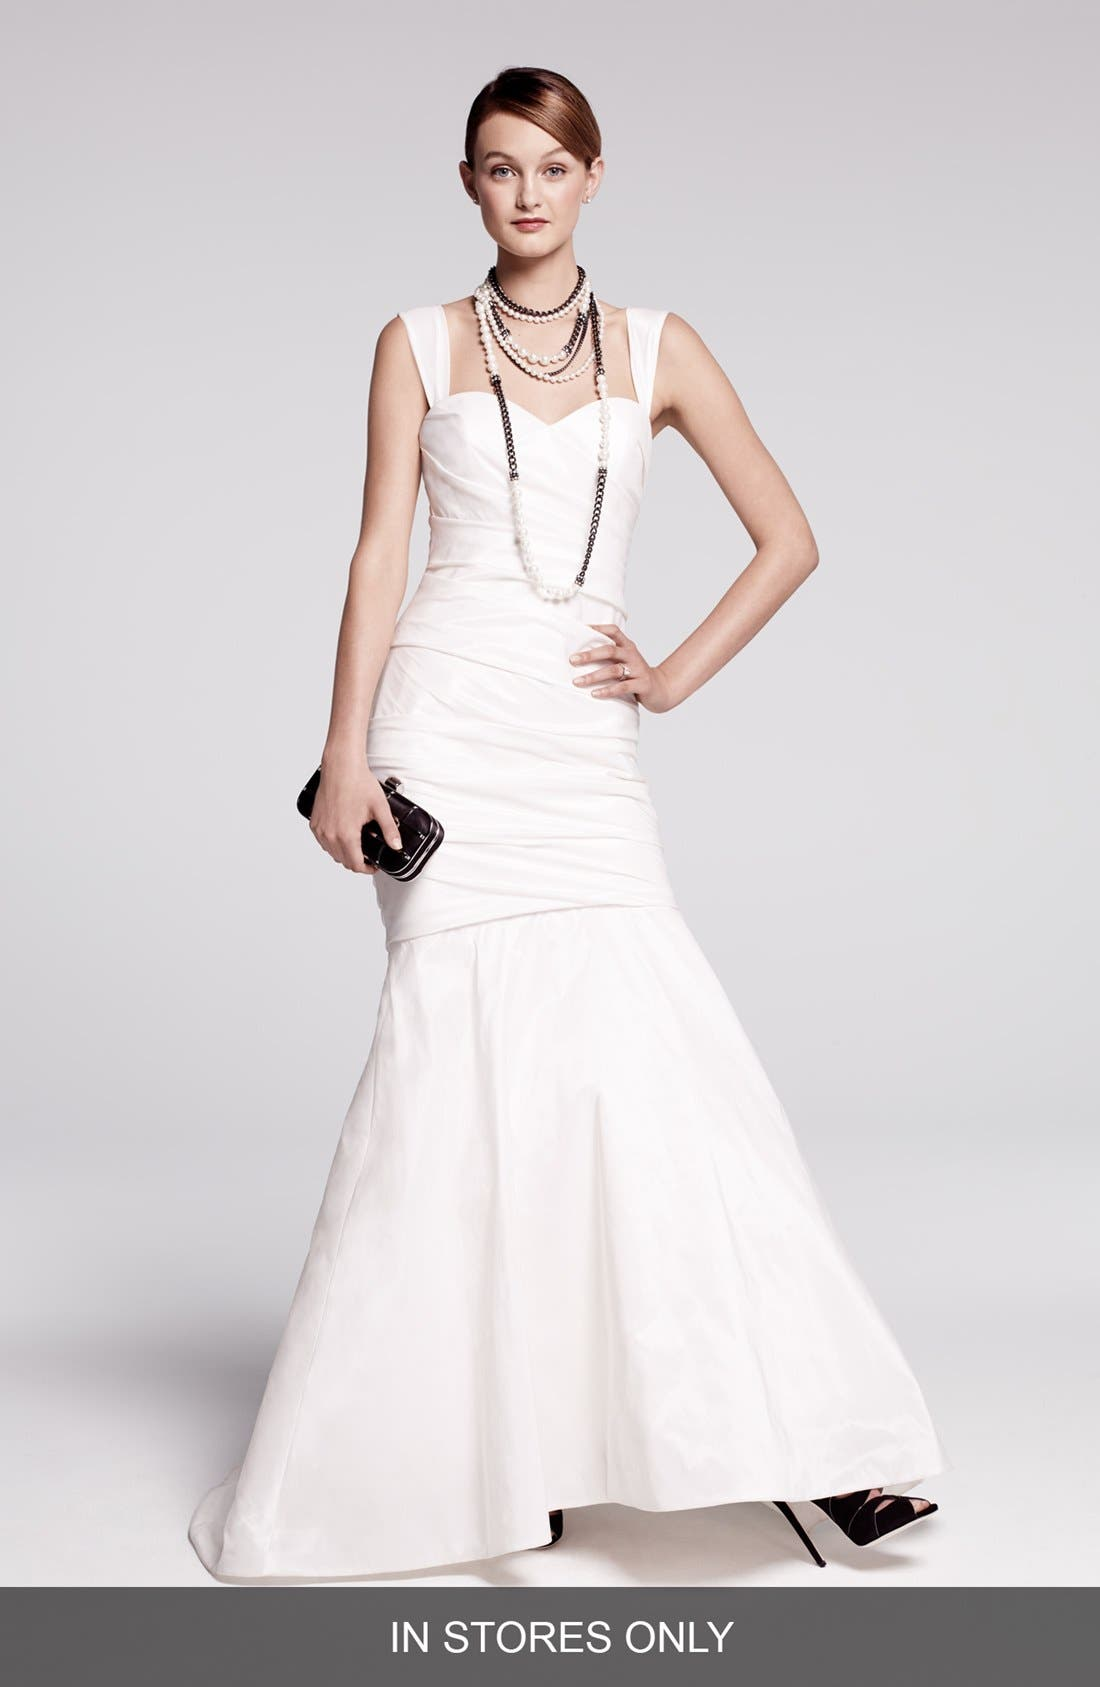 Alternate Image 1 Selected - Amsale Taffeta Mermaid Dress (In Stores Only)